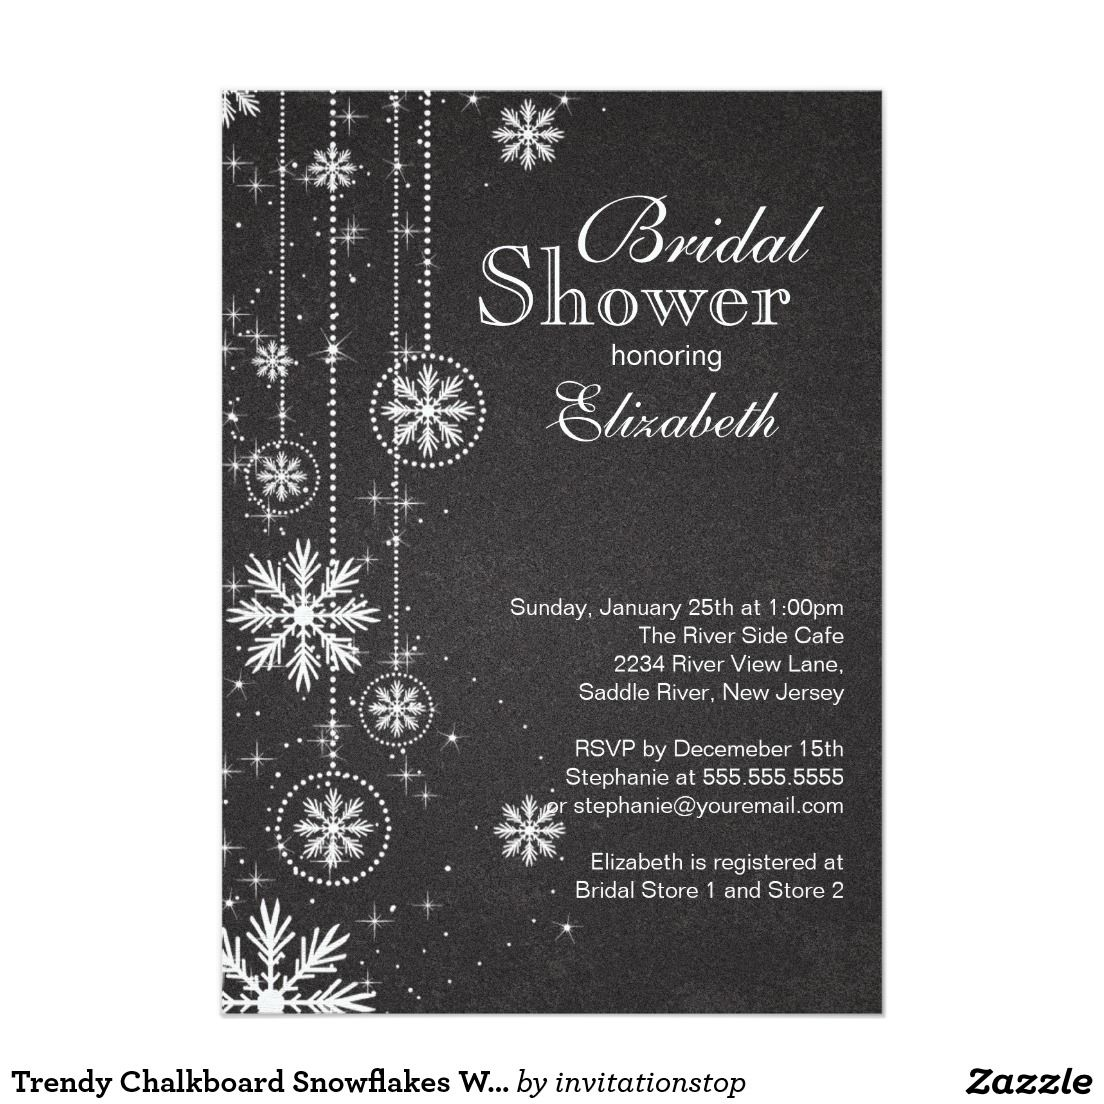 Trendy Chalkboard Snowflakes Winter Bridal Shower Card  Winter